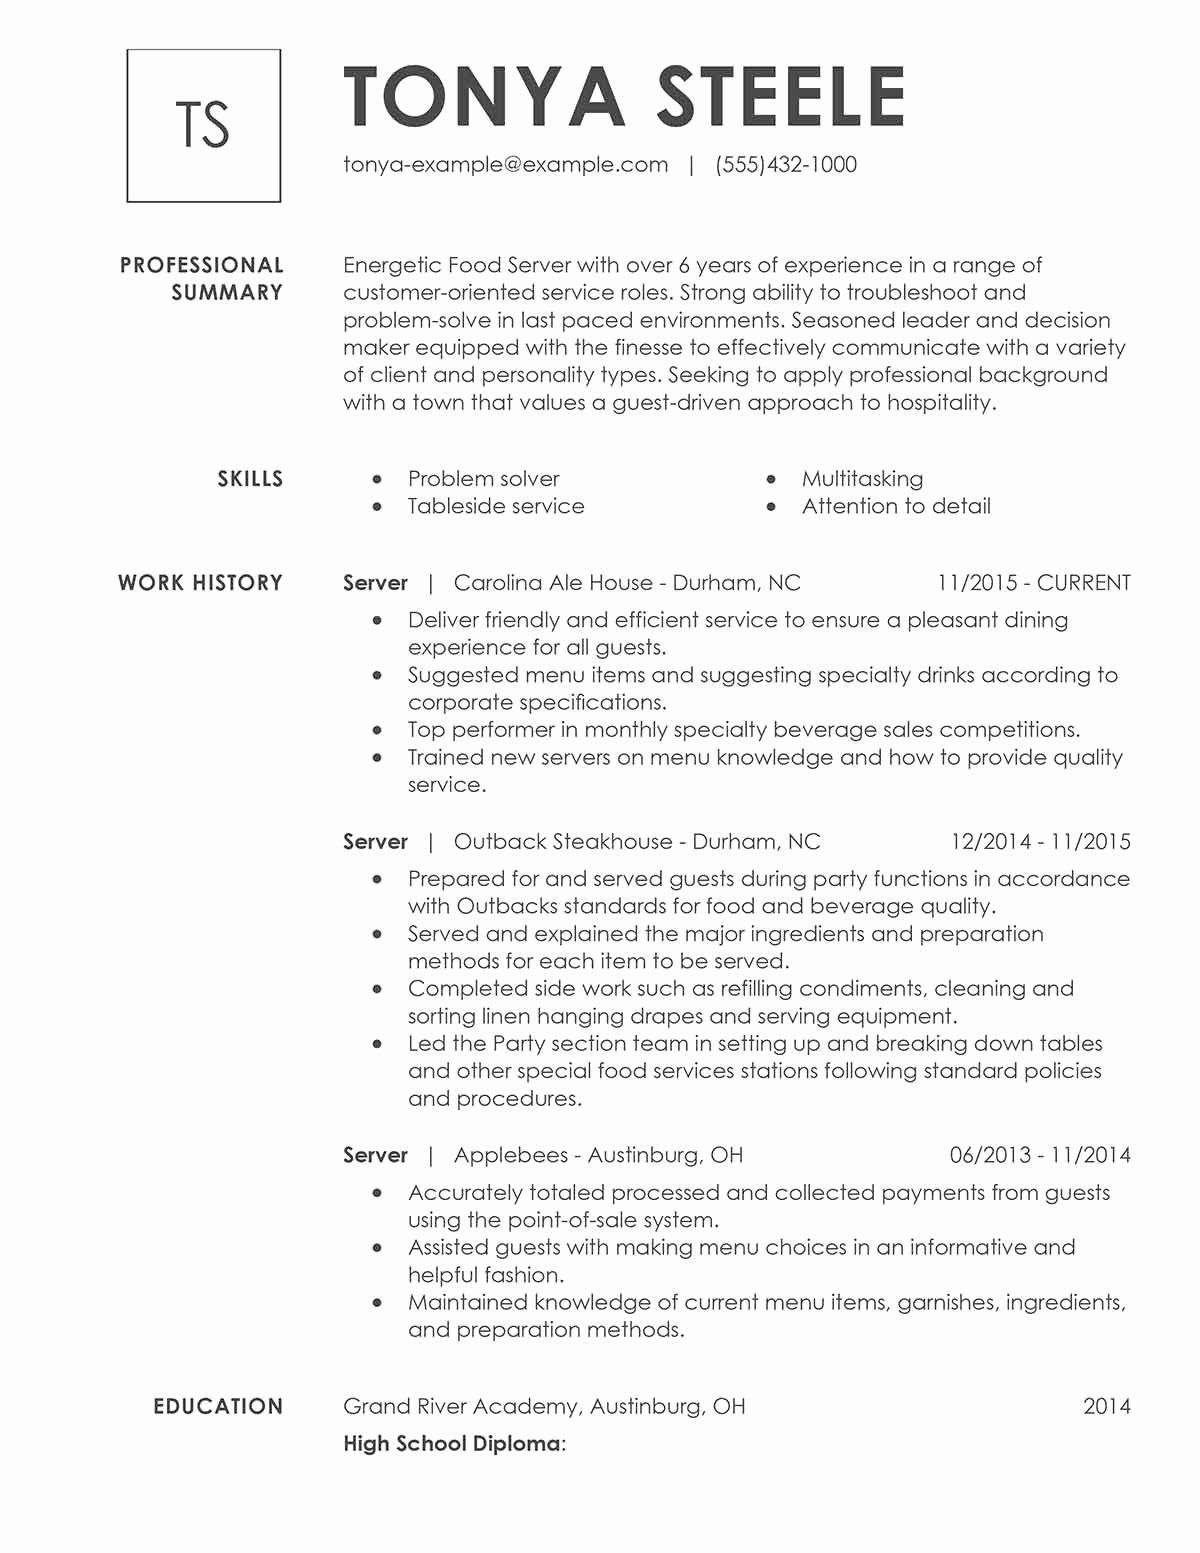 20 Food Service Worker Job Description Resume Good Resume